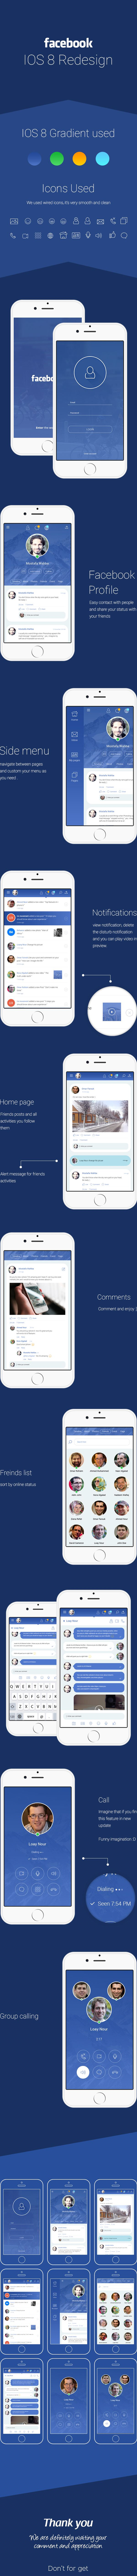 Facebook IOS 8 Redesign